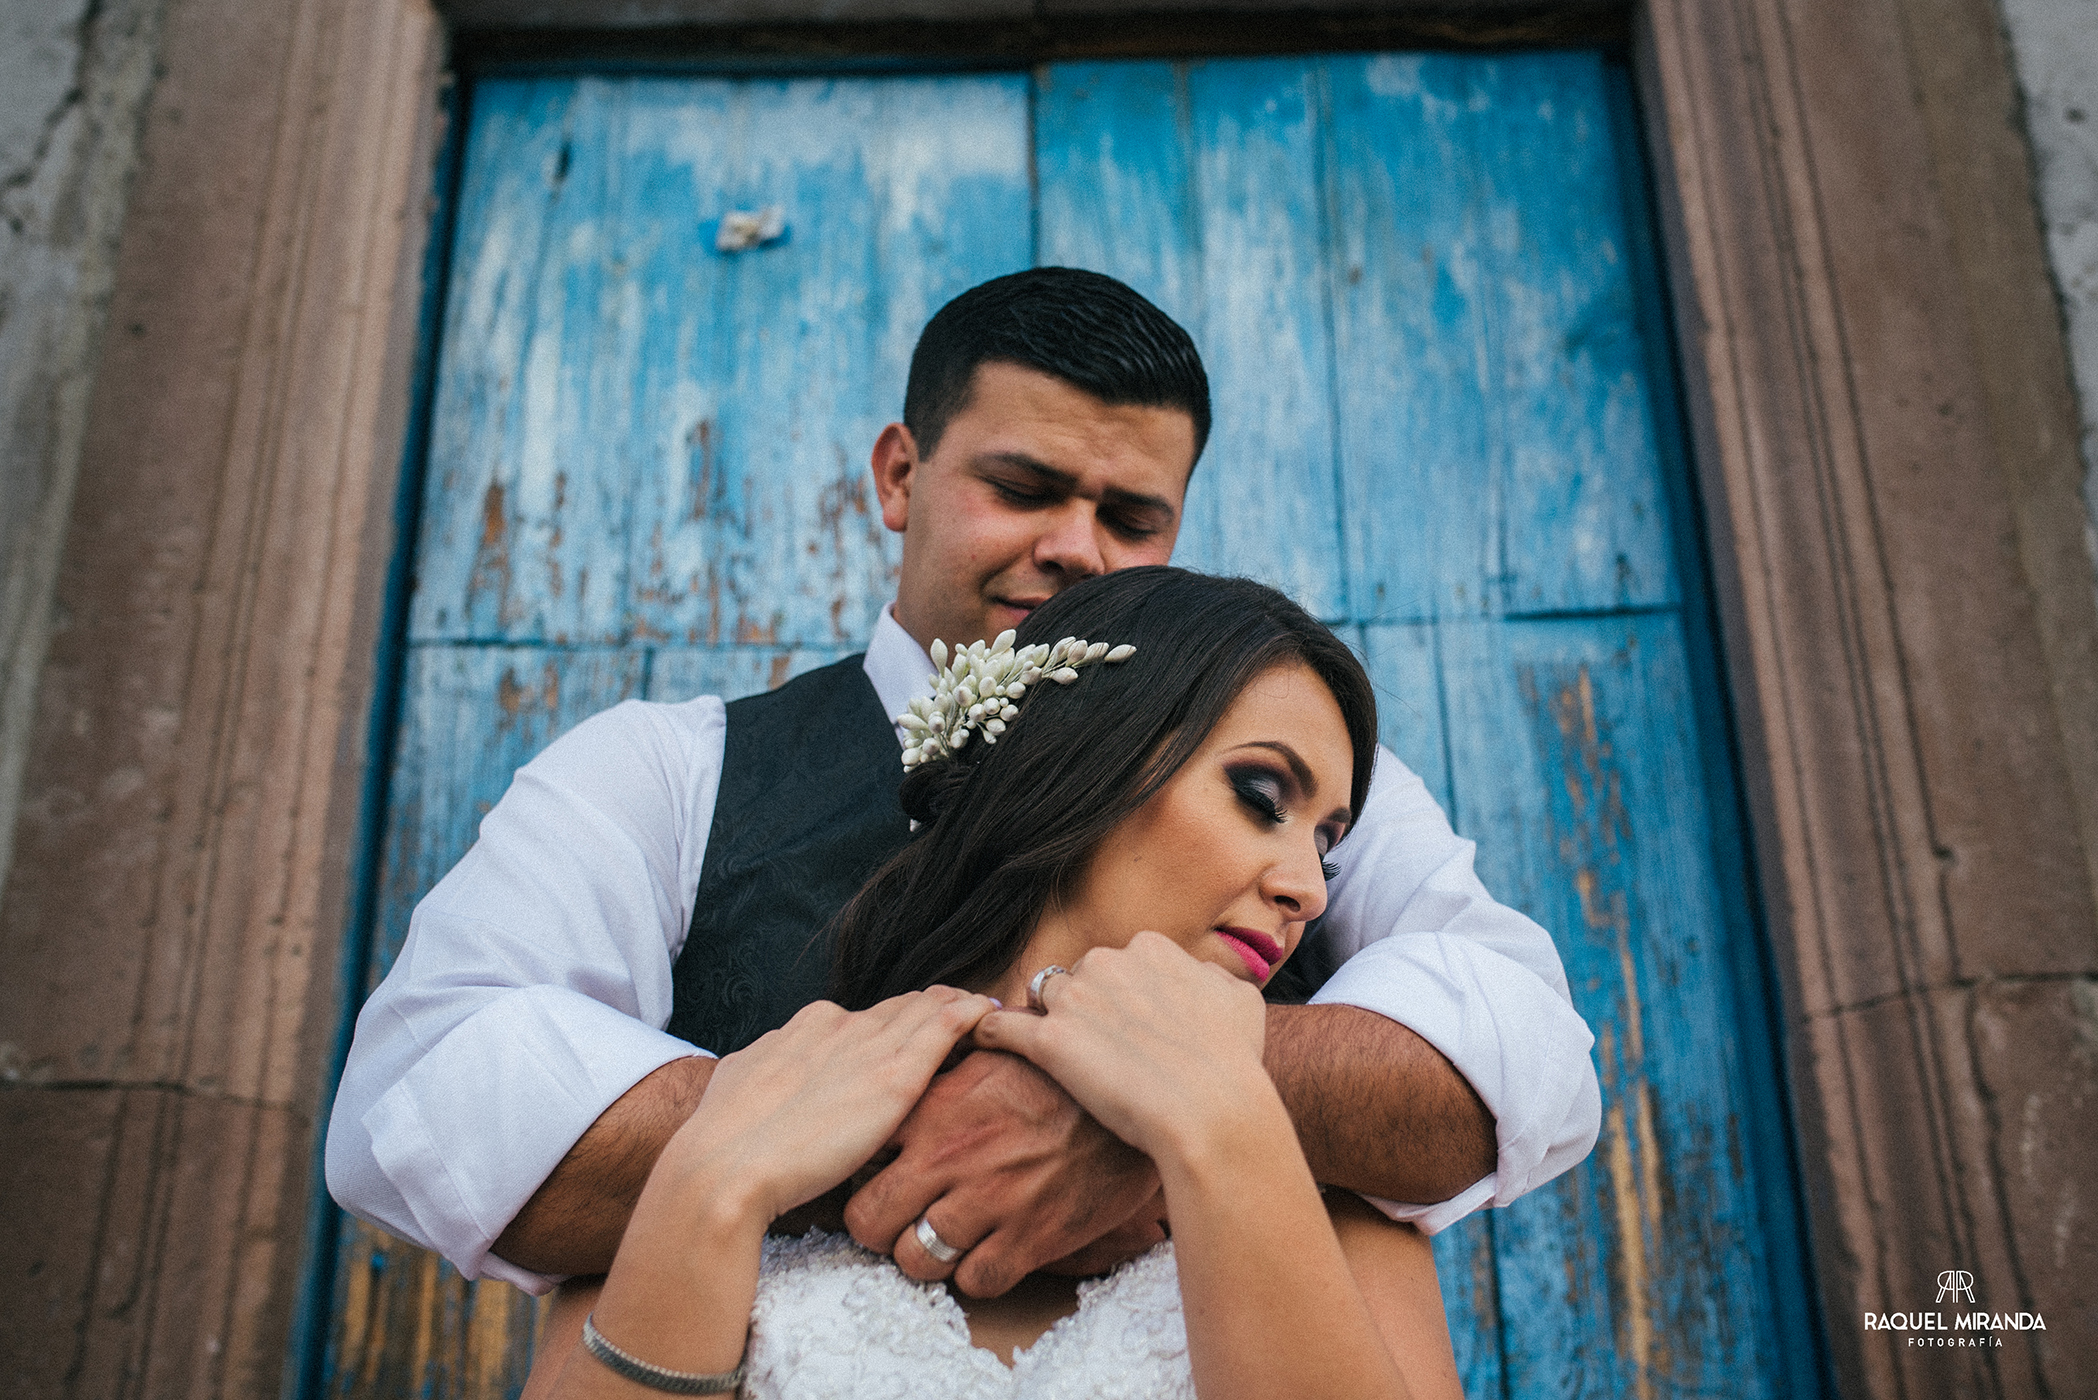 raquel miranda fotografía - trash the dress - nallely&victor-15.jpg